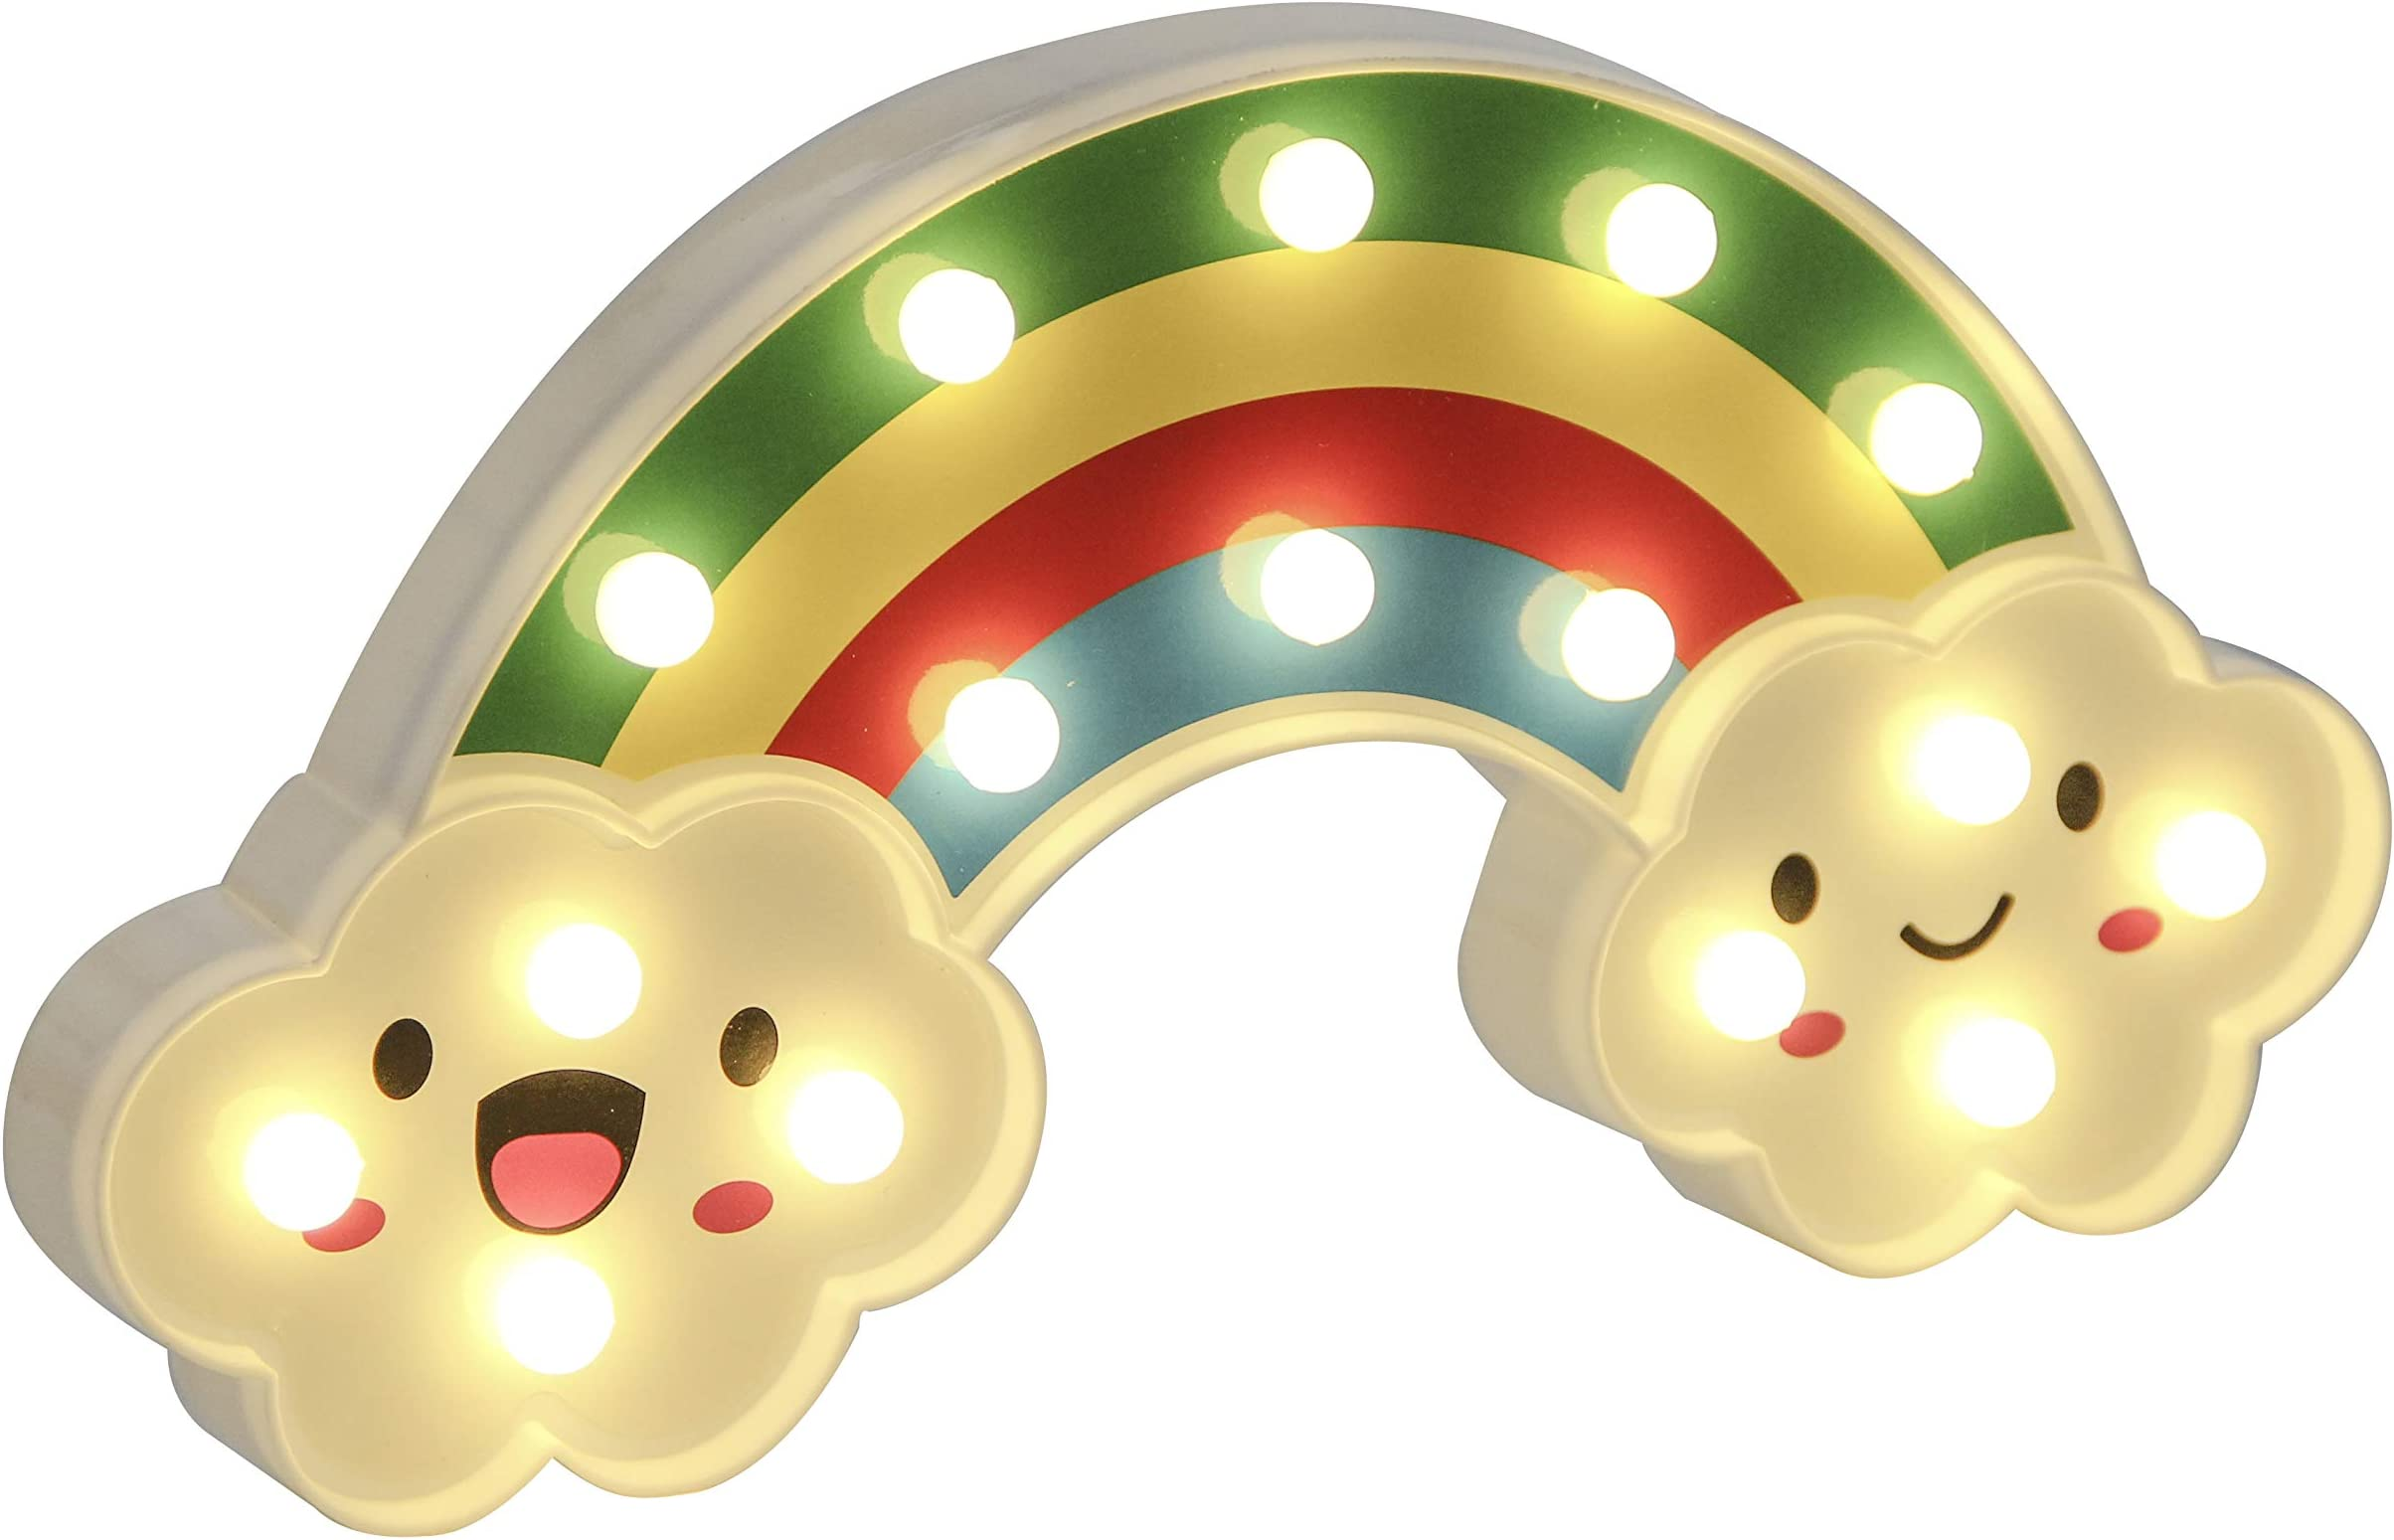 RECUTMS LED Light Night Lights Battery Operated Decorative Signs Rainbow LED Lamp Wall Decoration for Living Room,Bedroom,Home,Party,Christmas Kids Toys(Rainbow)